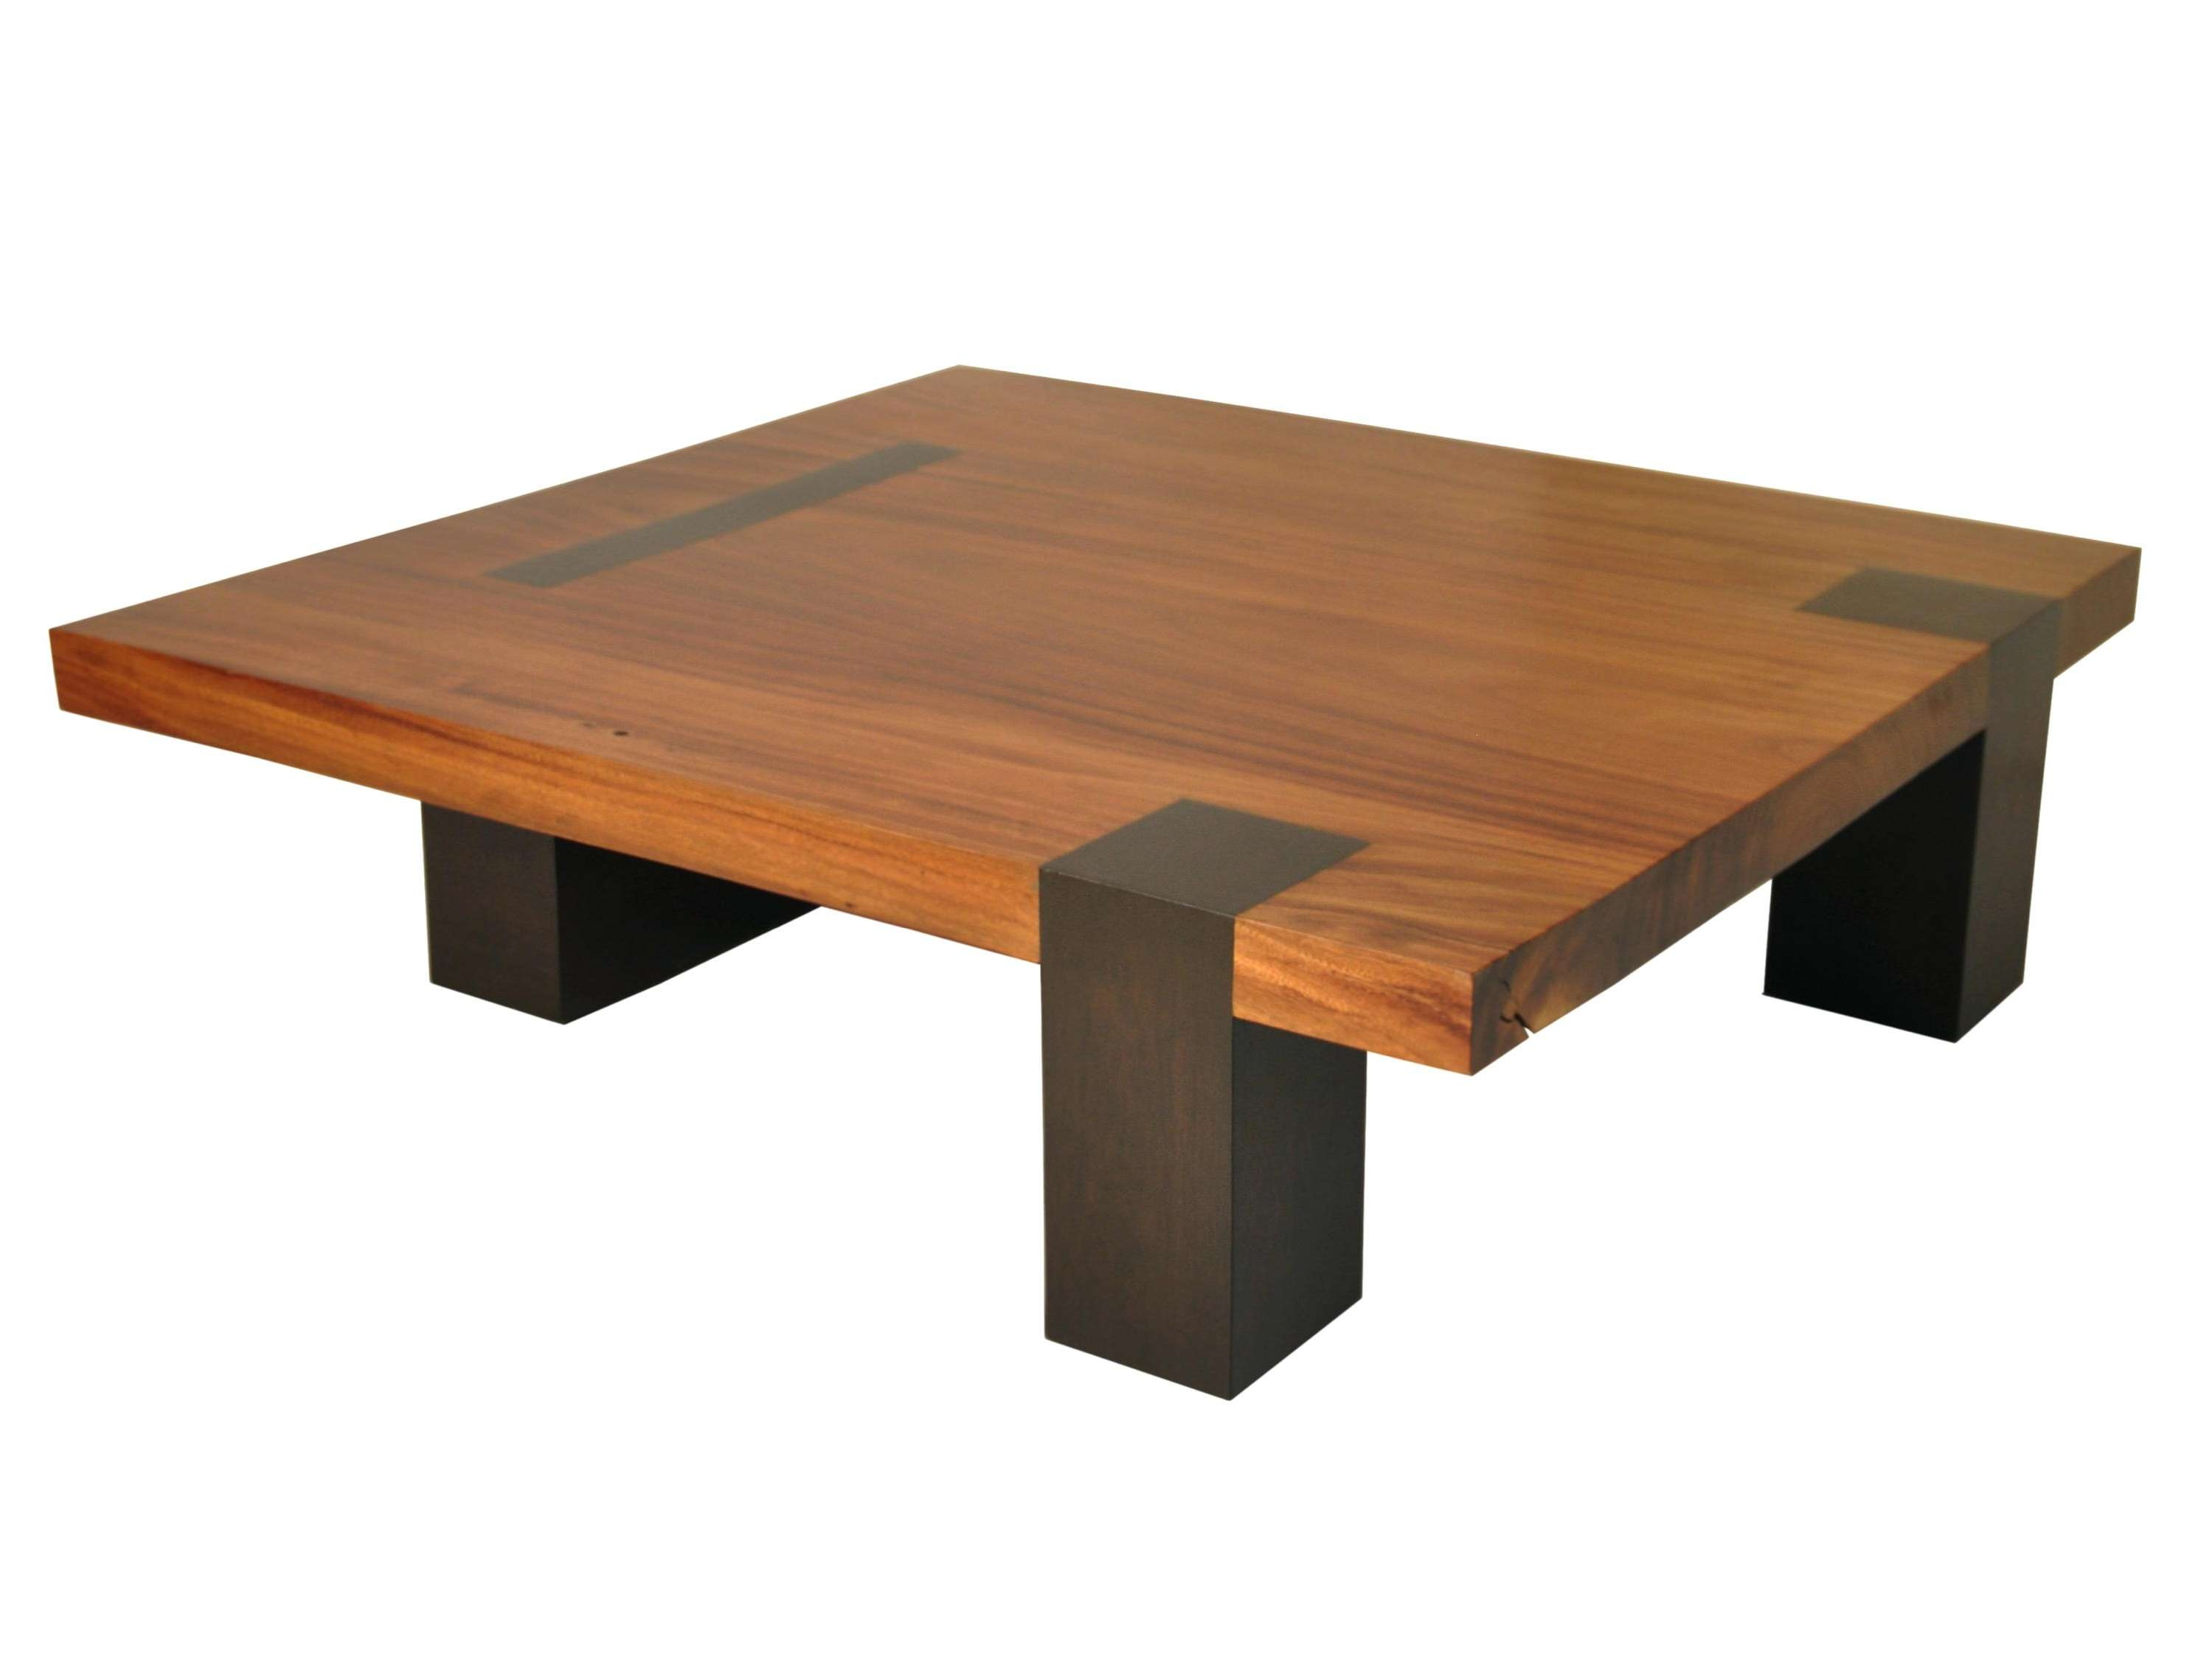 Most Recently Released Low Wooden Coffee Tables With Regard To Coffee Table : Wonderful Tea Table Online Low Coffee Table Black (View 17 of 20)